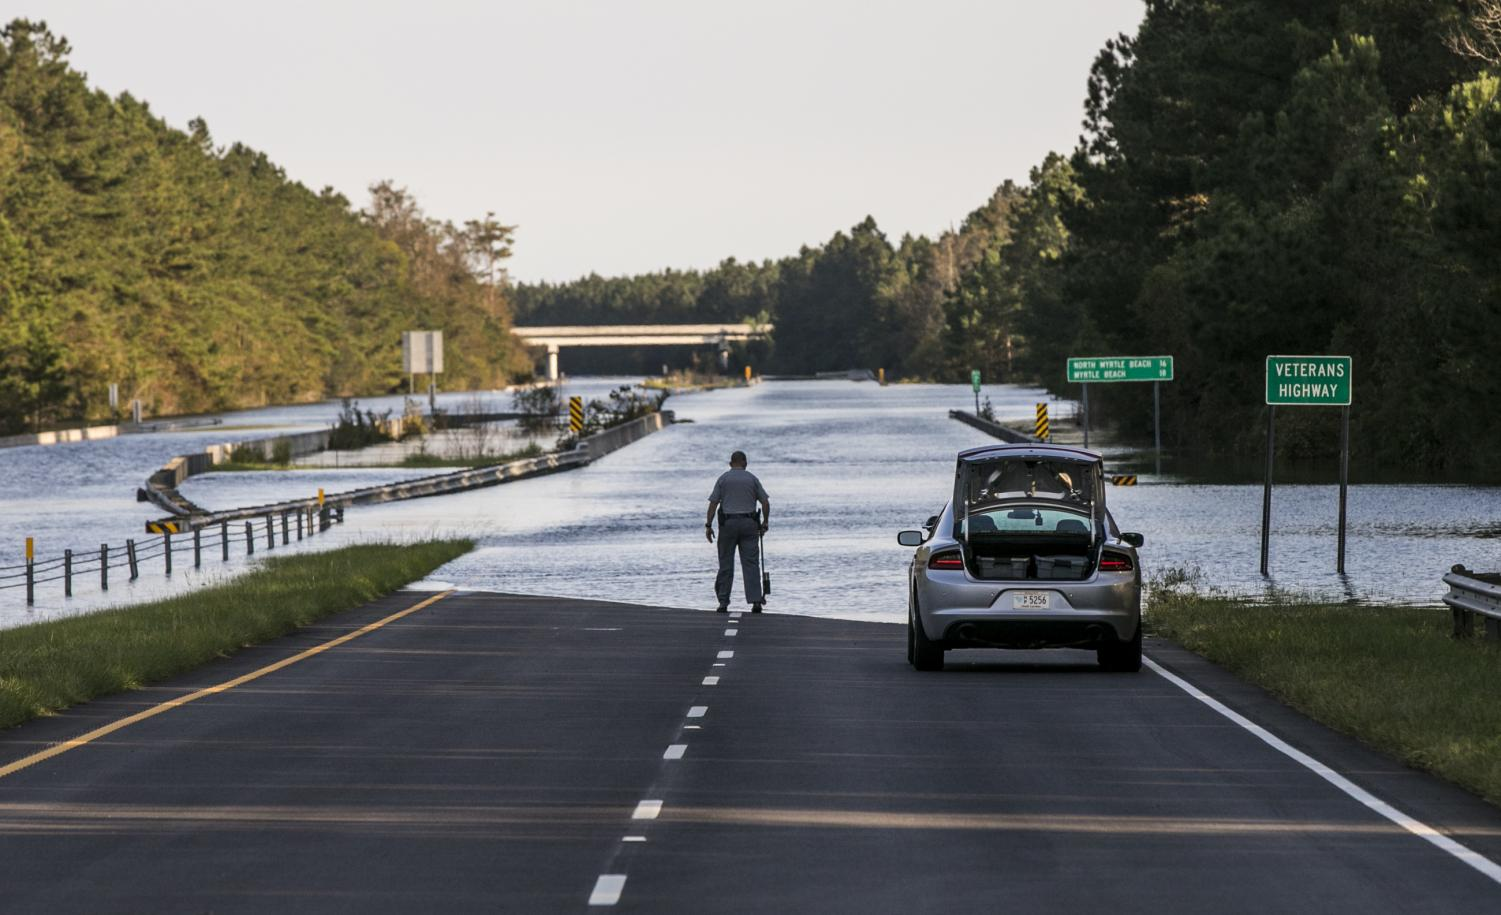 S.C. Highway 22 is flooded between SC-90 and SC-905 on Saturday, Sept. 22, 2018, in Conway, S.C. An officer with the South Carolina State Highway Patrol marks the water level to compare against previous days. The blocked road has traffic snarled around Conway and the Waccamaw River continues to rise past record levels.